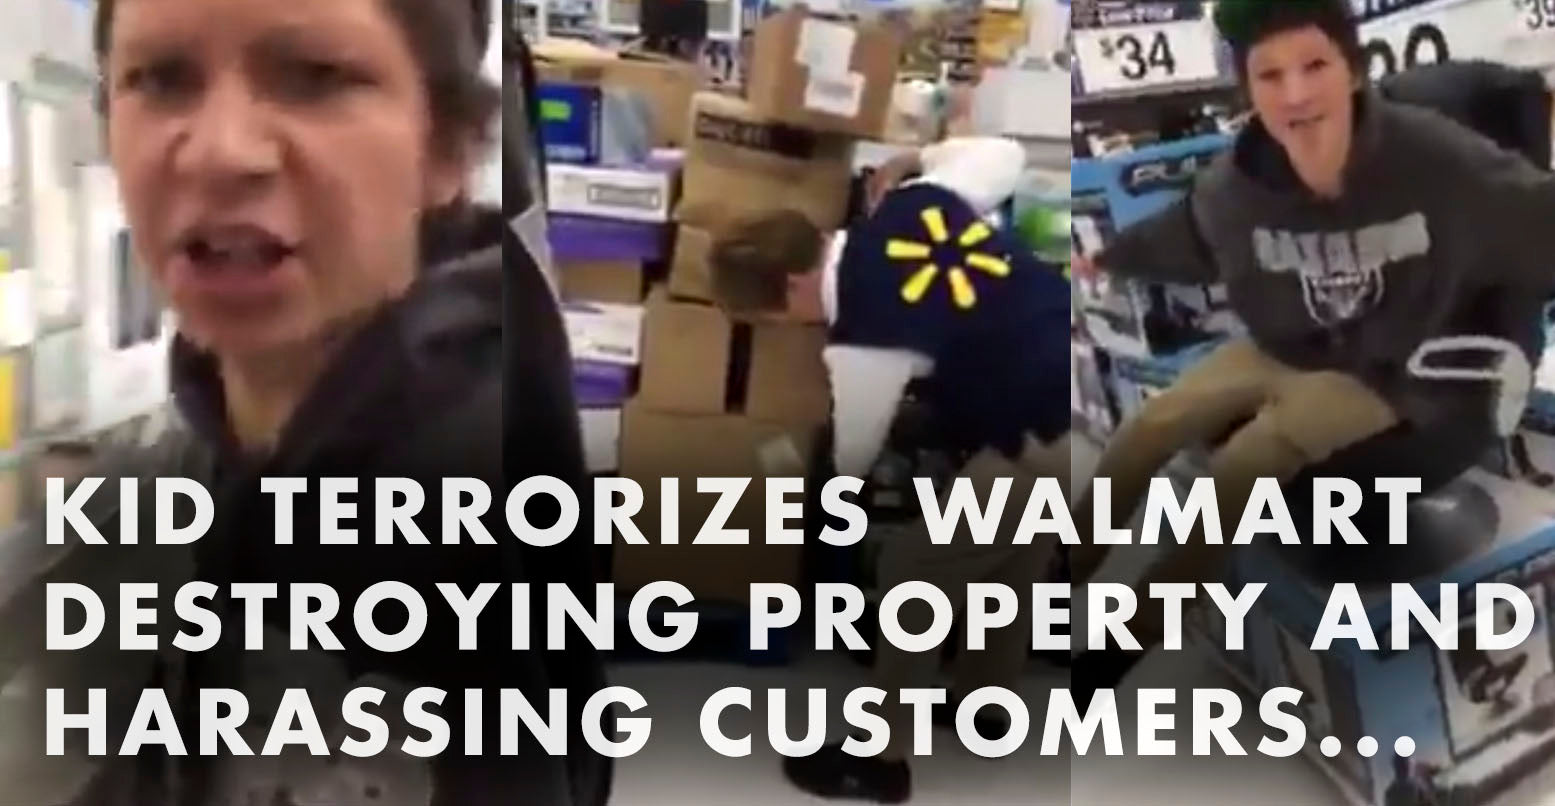 VIDEO: Kid Terrorizes Walmart, Destroys Property, Harasses Customers